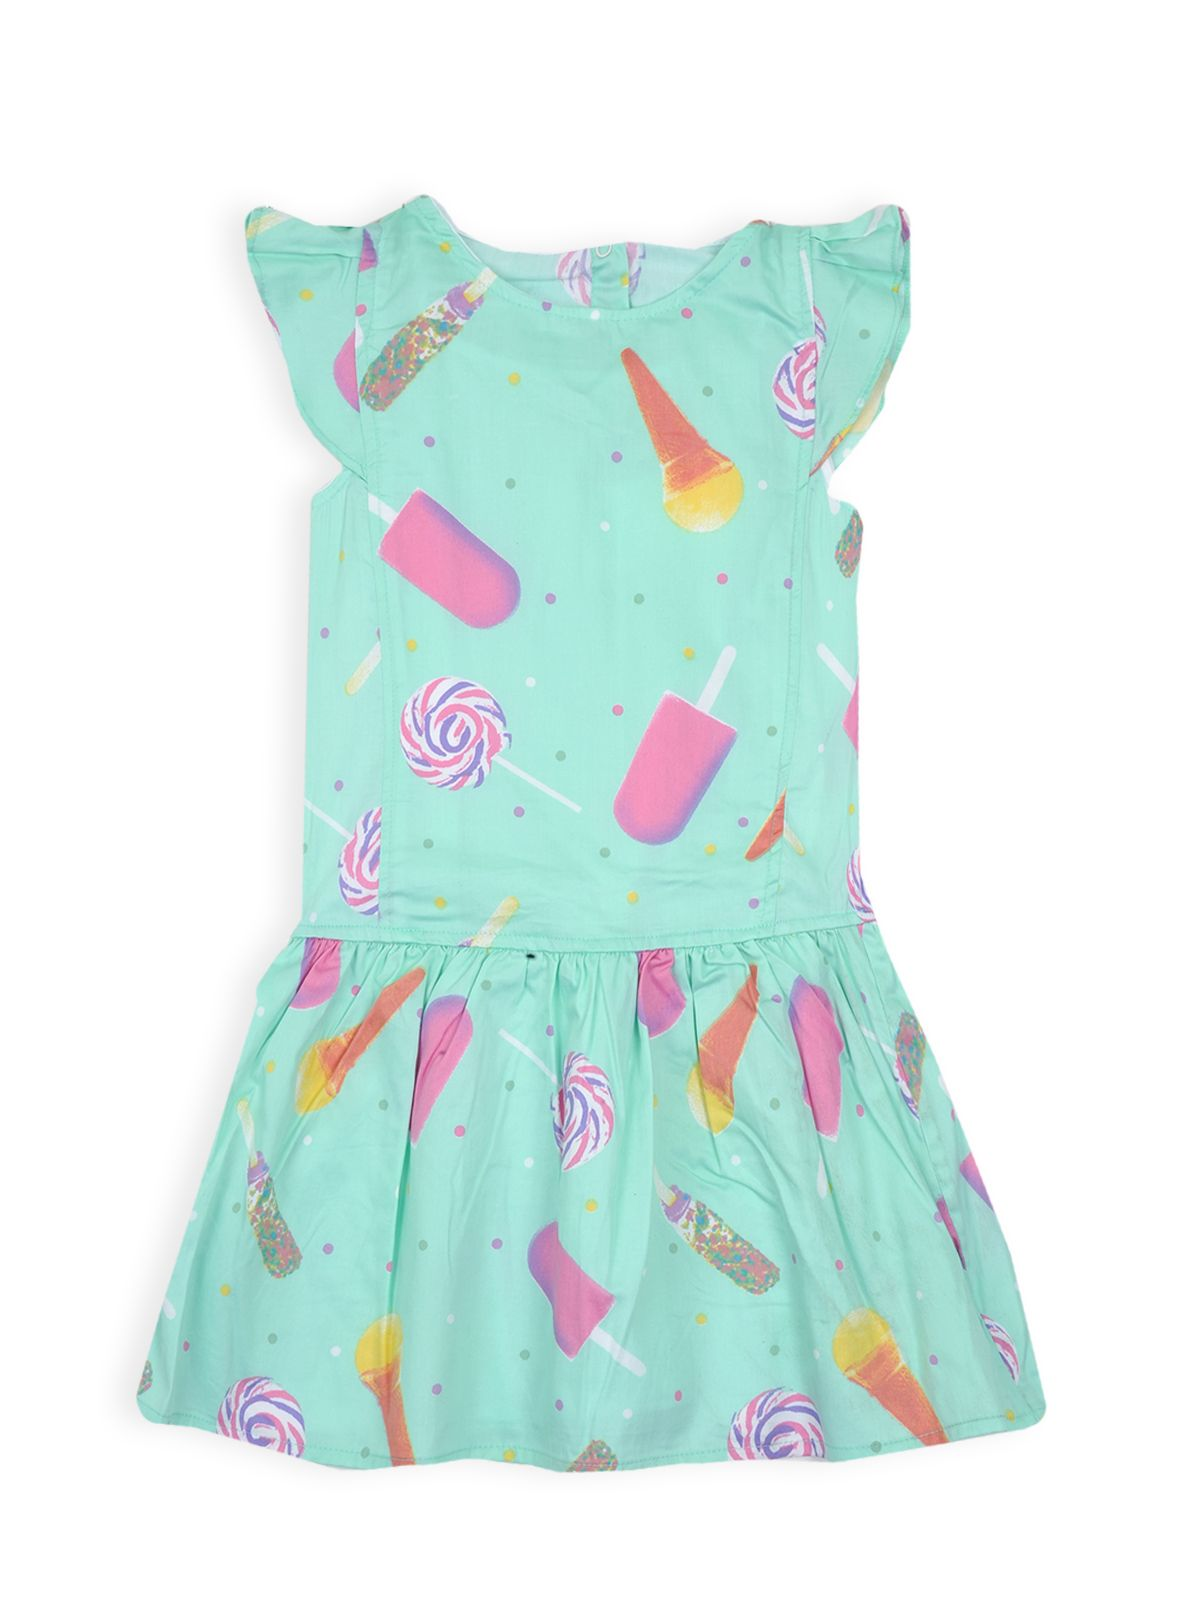 Girls sweet treat dress